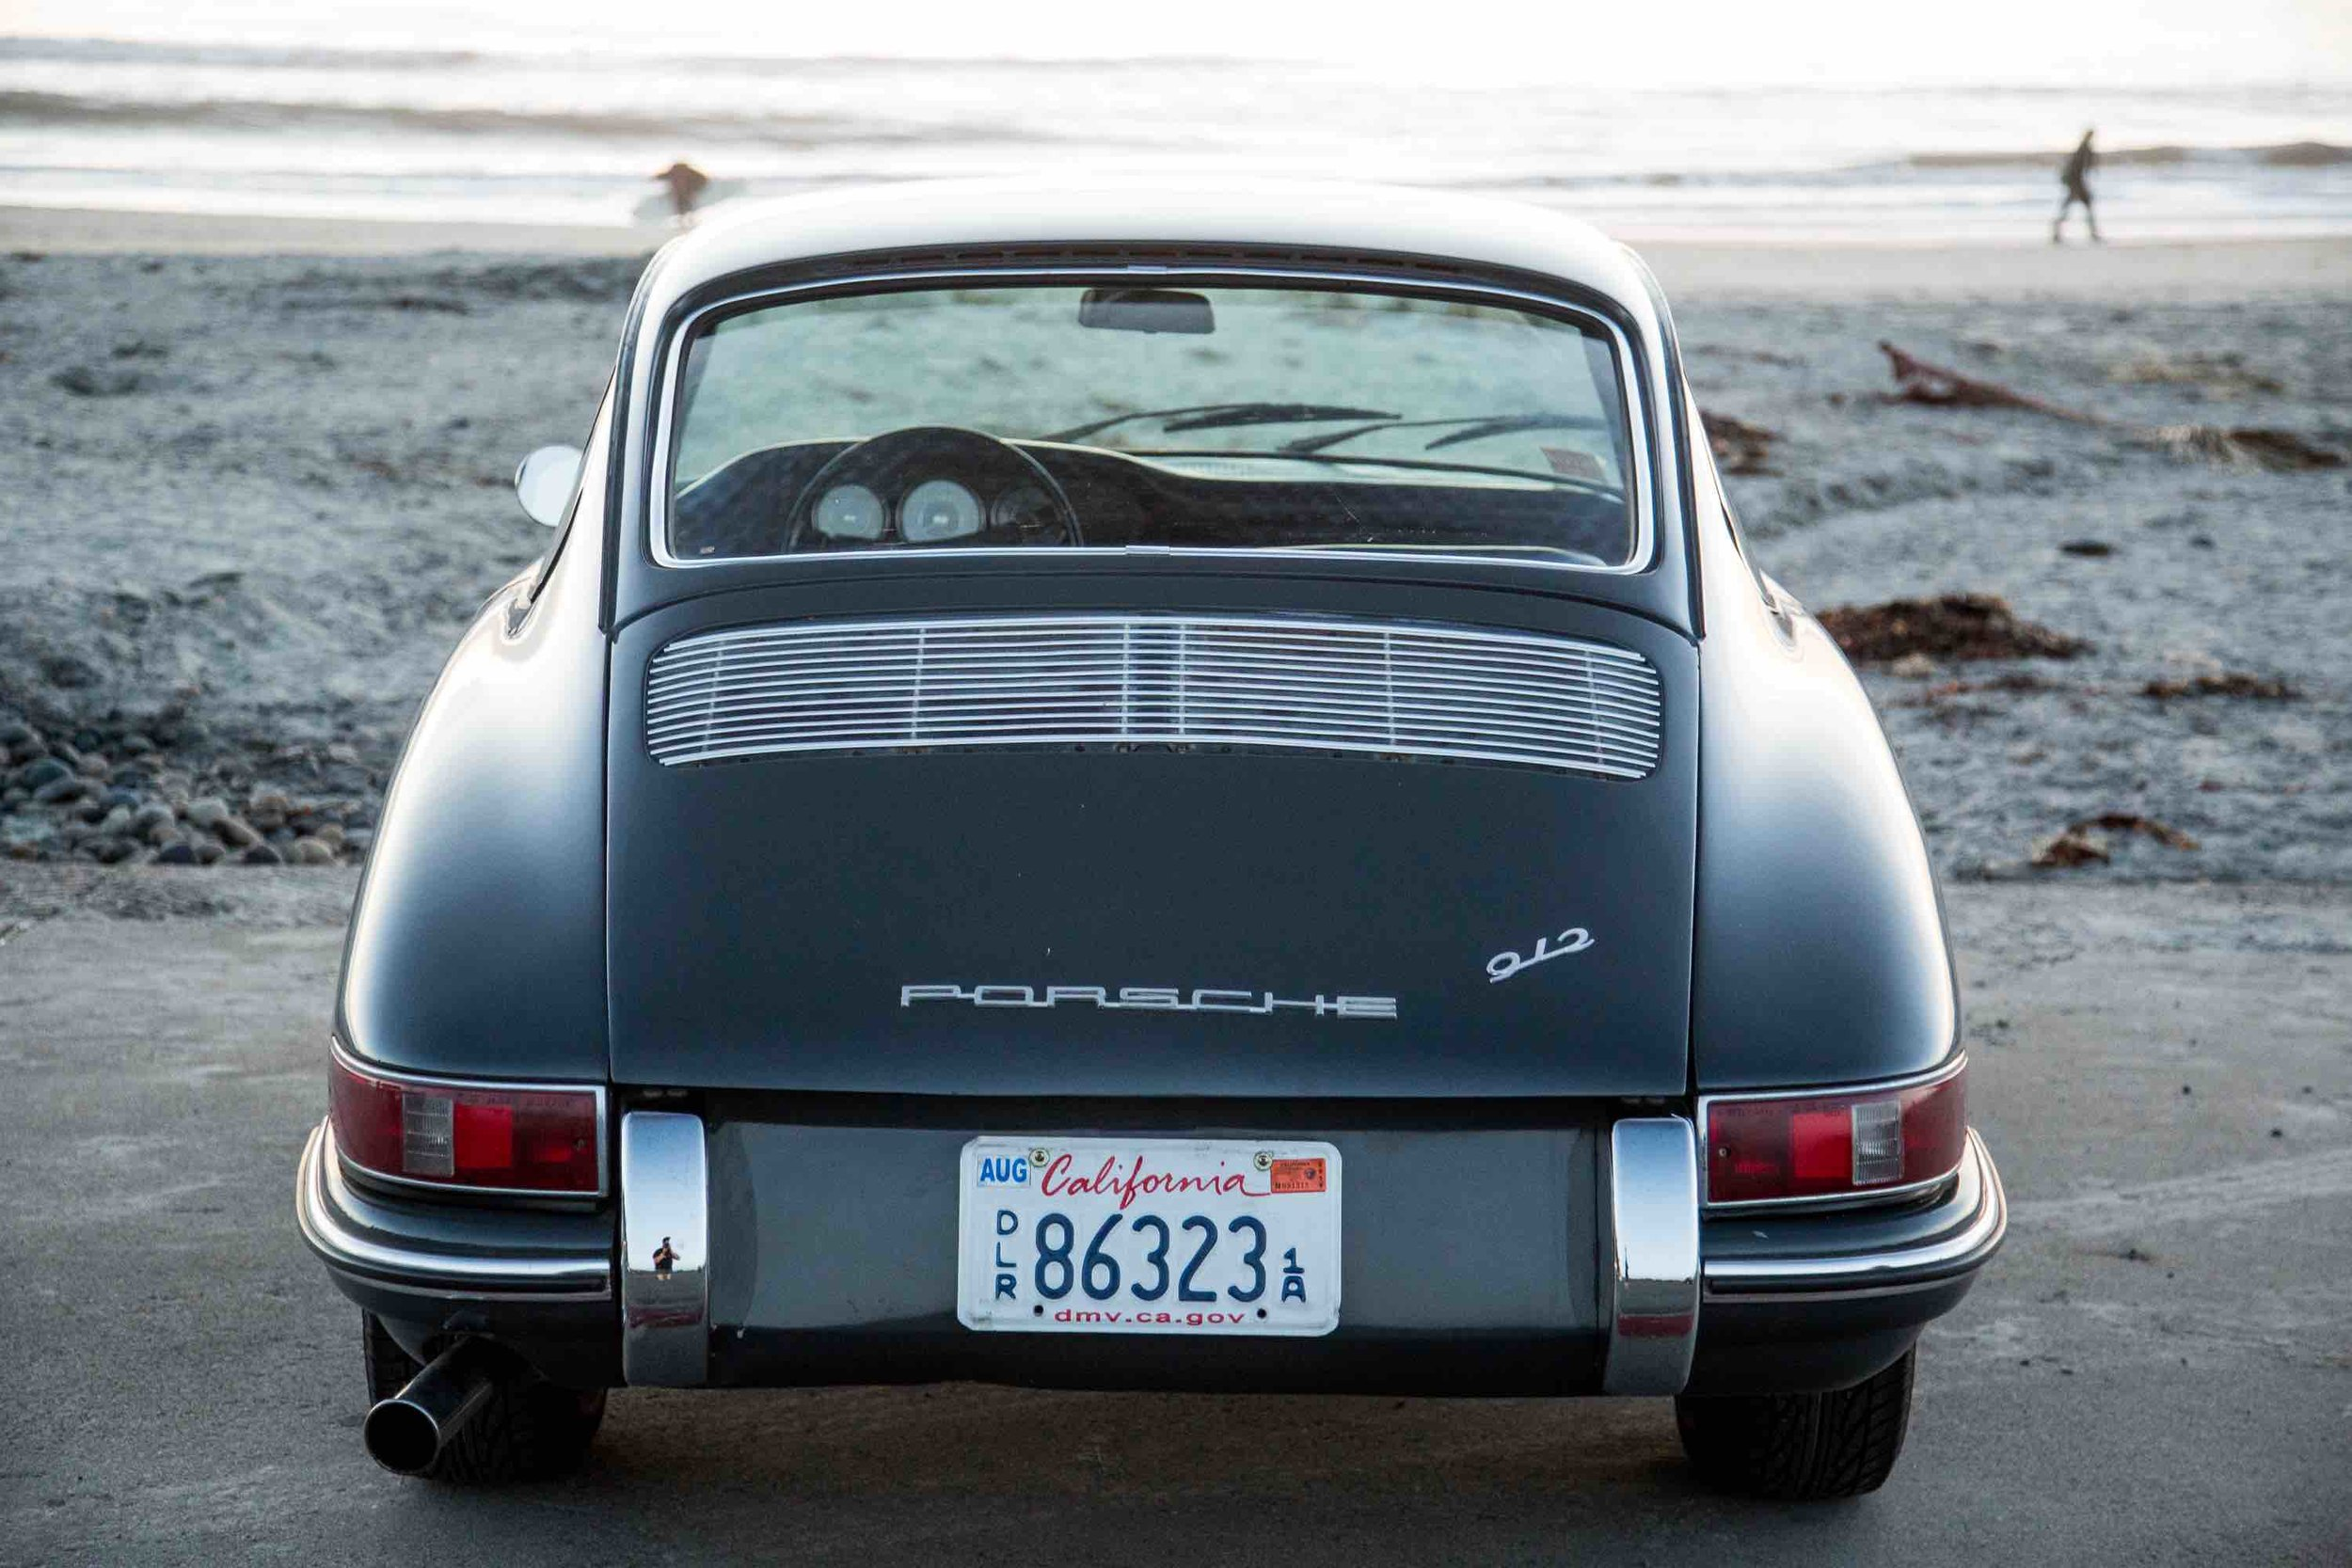 1966-porsche-912-slate-grey-makellos-classics-rear-beach-background.jpeg